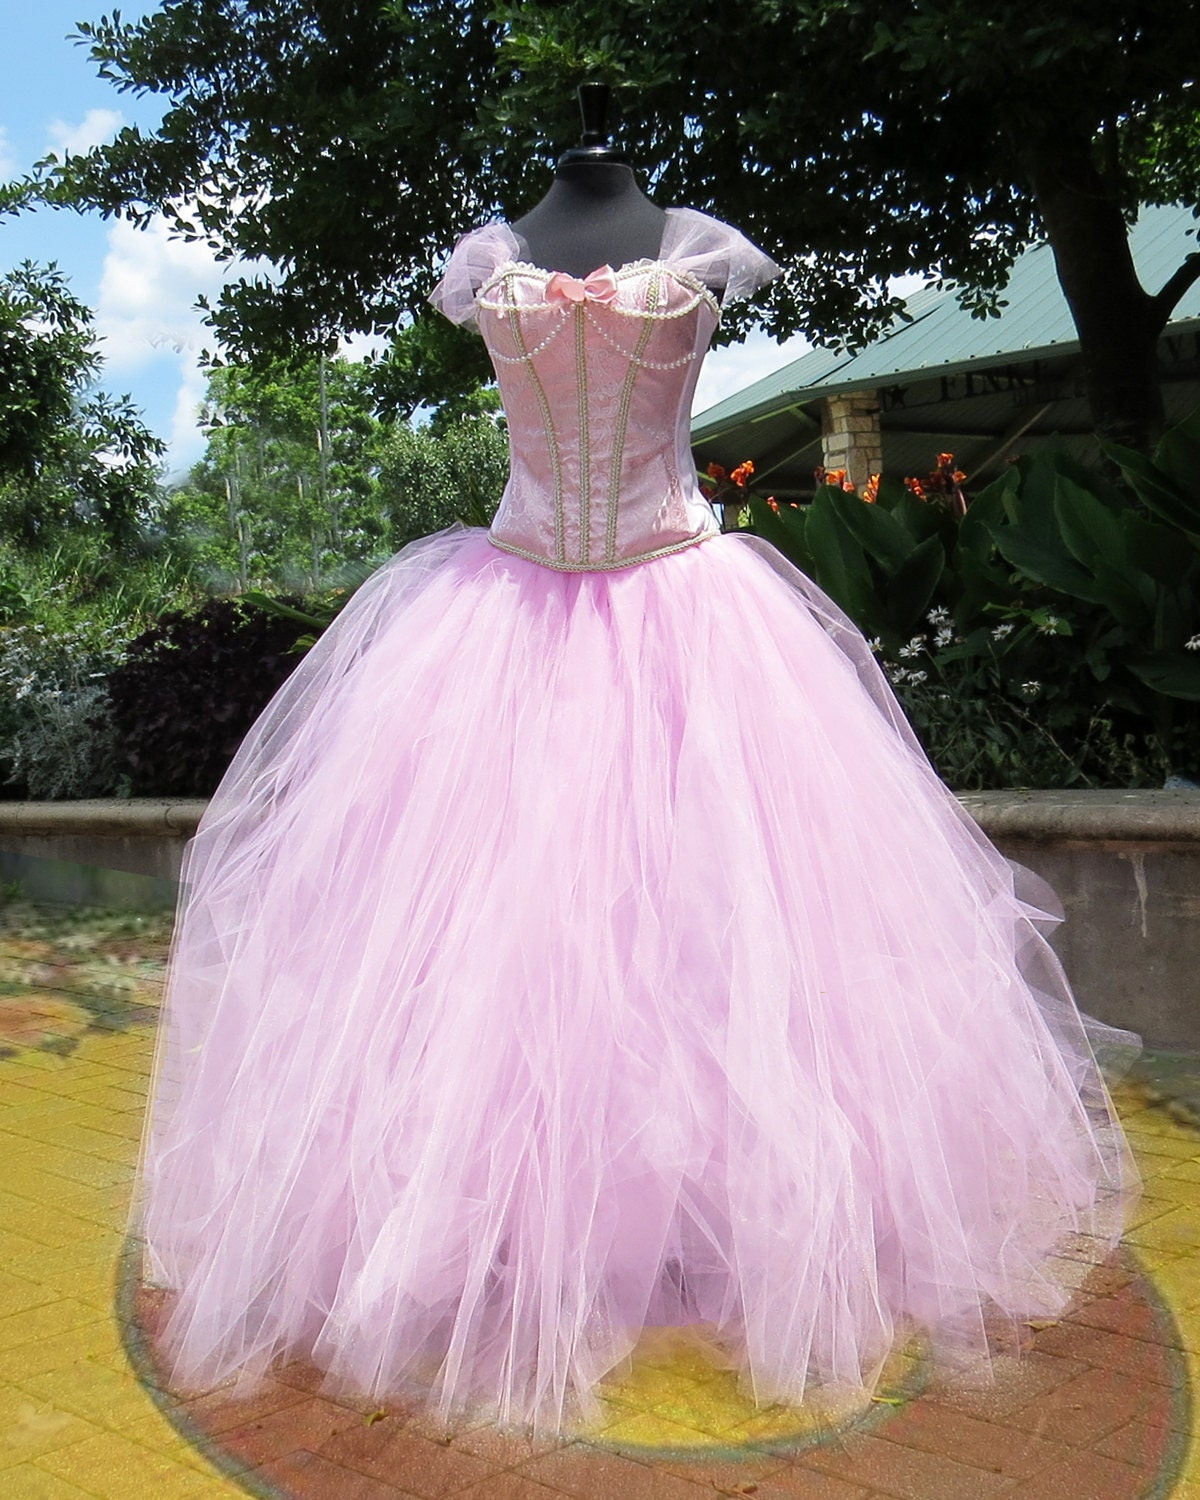 Adult Glinda the Good Witch Costume Skirt Tulle skirt for